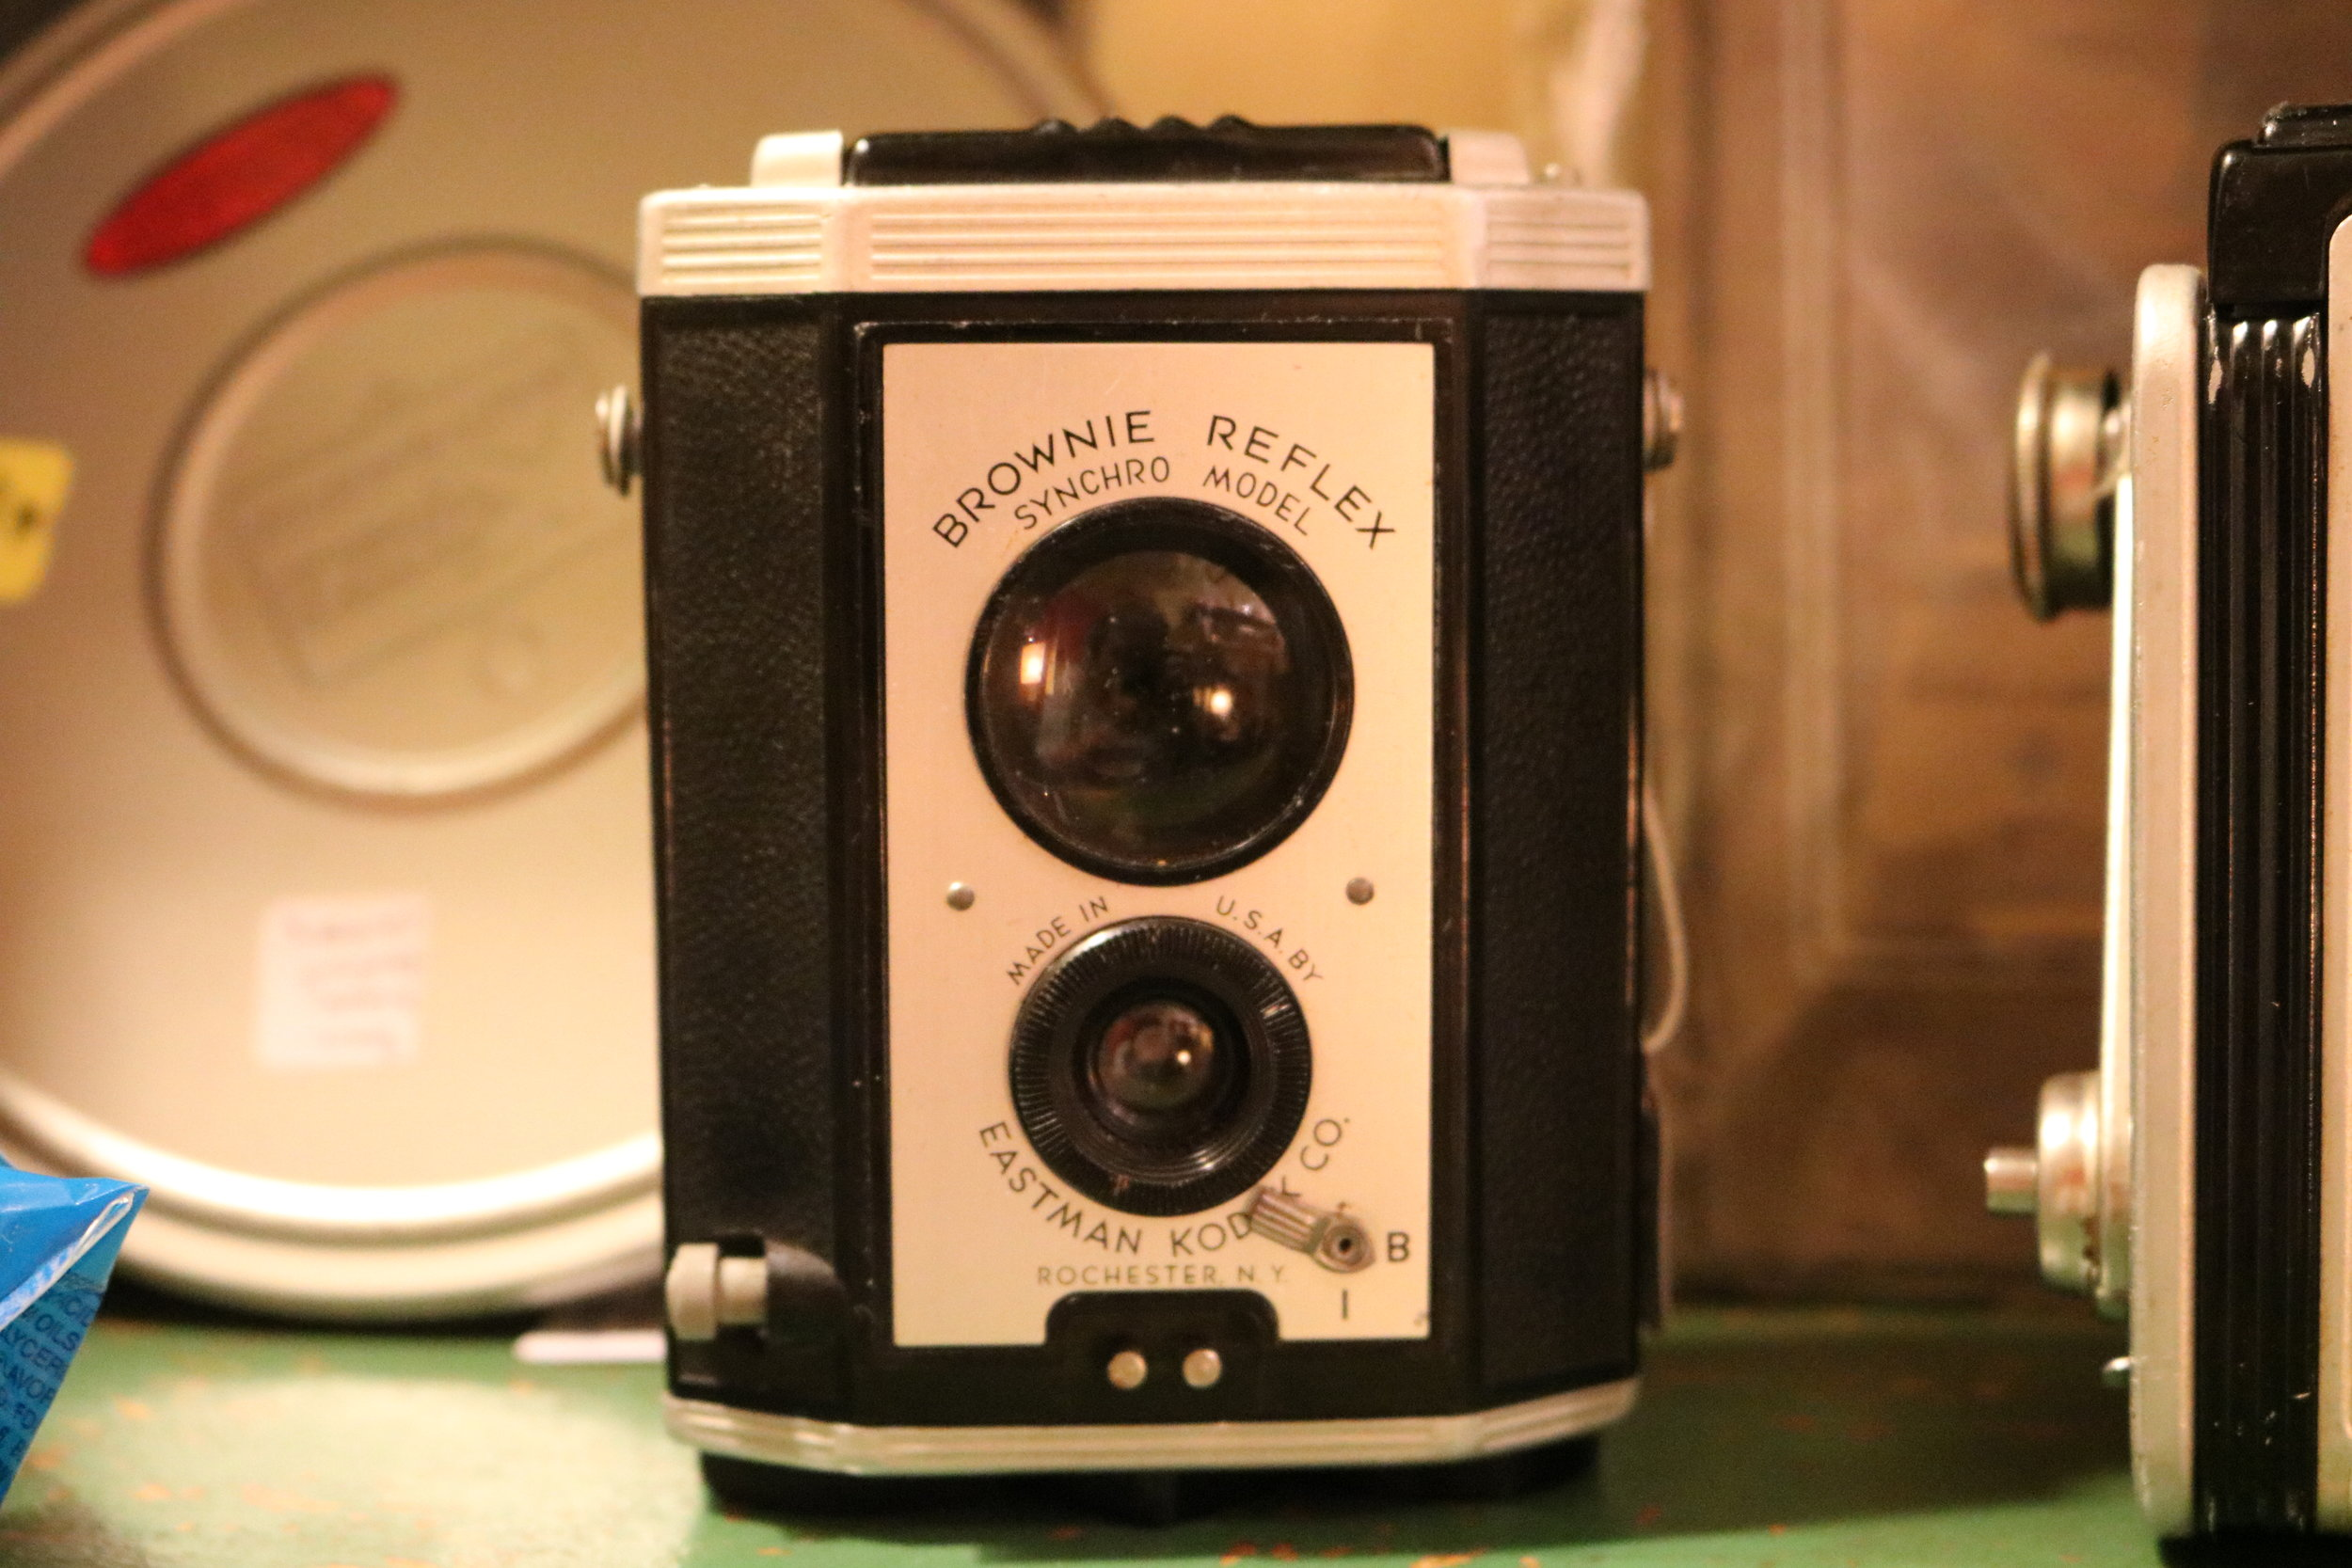 An old Kodak Brownie Reflex camera from the 1940's-1950's for sale (I actually bought this one because its really cool).